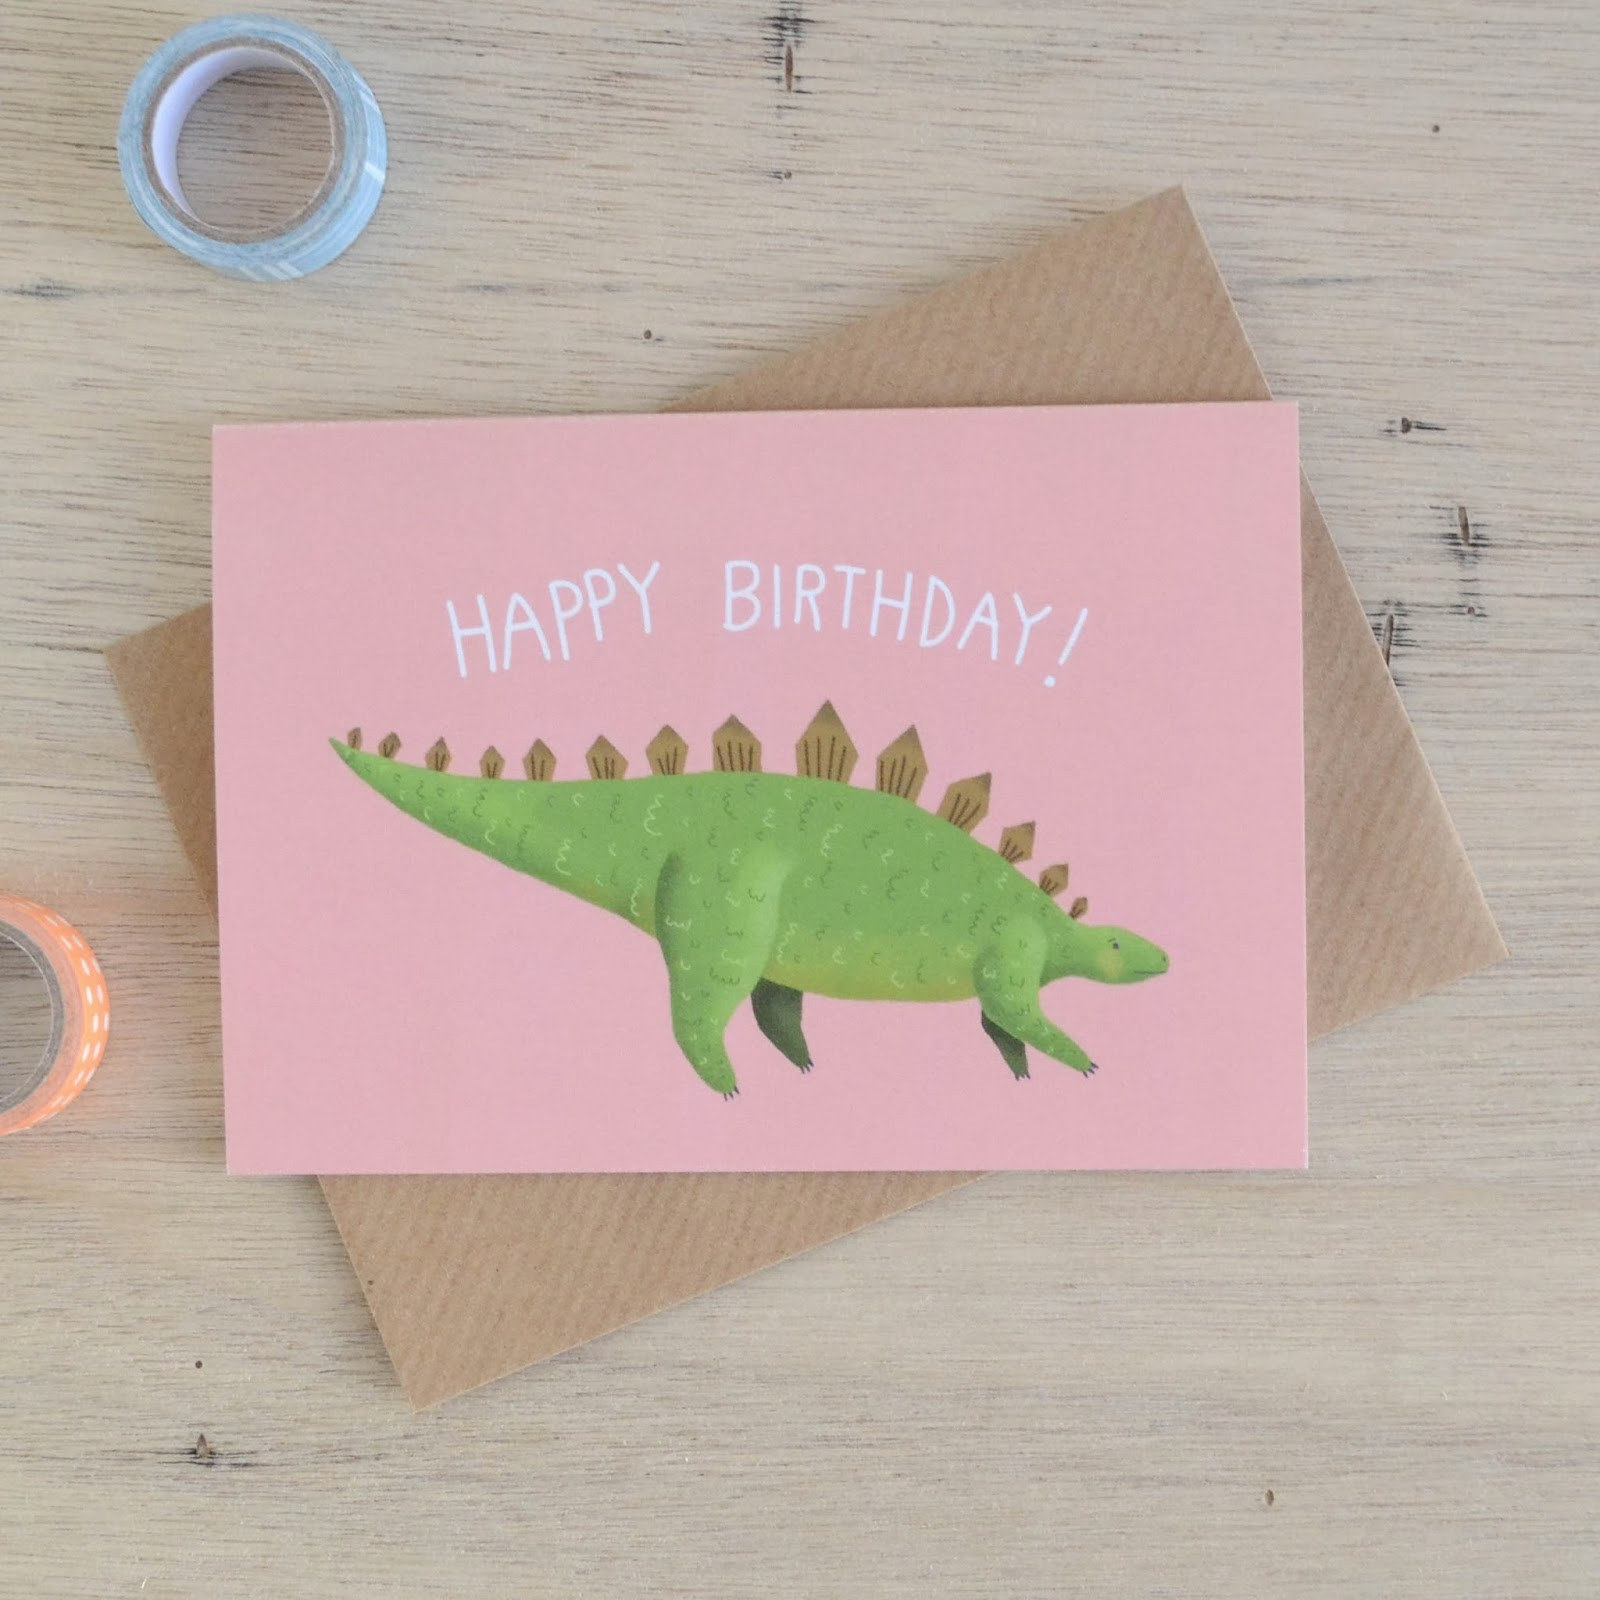 http://folksy.com/items/5725571-Stegosaurus-Birthday-Card